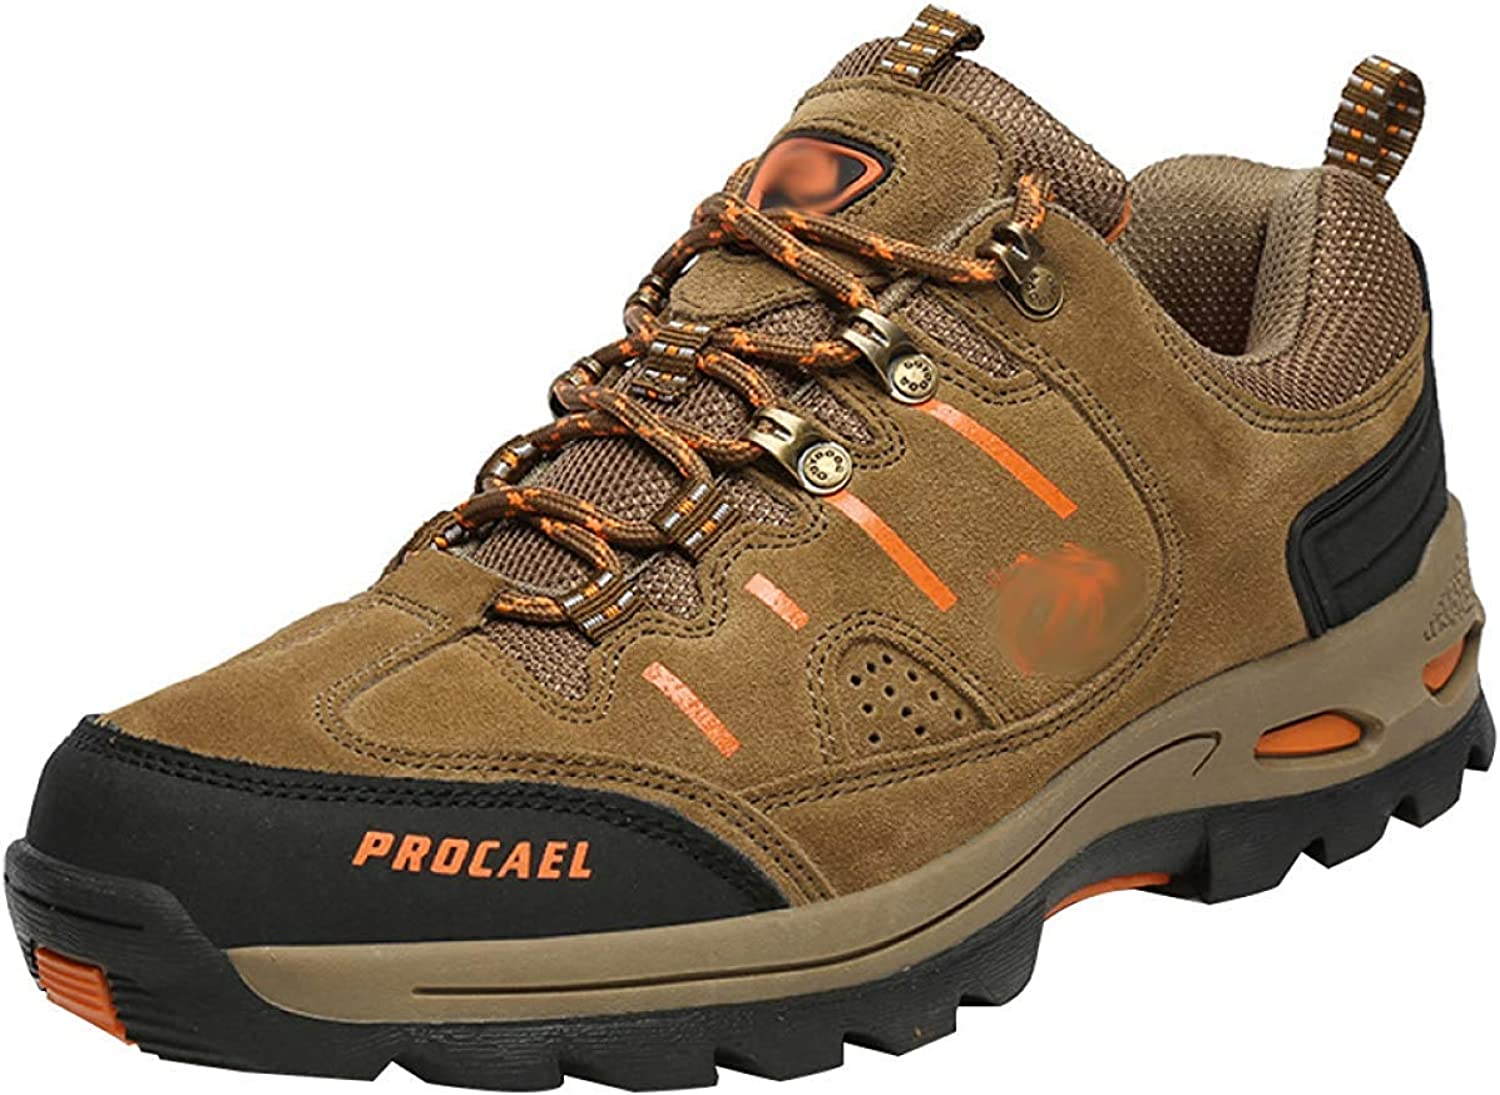 Men's Walking Boots Leather Hiking shoes Sneakers For Outdoor Trekking Training Casual Work (color   23, Size   43EU)